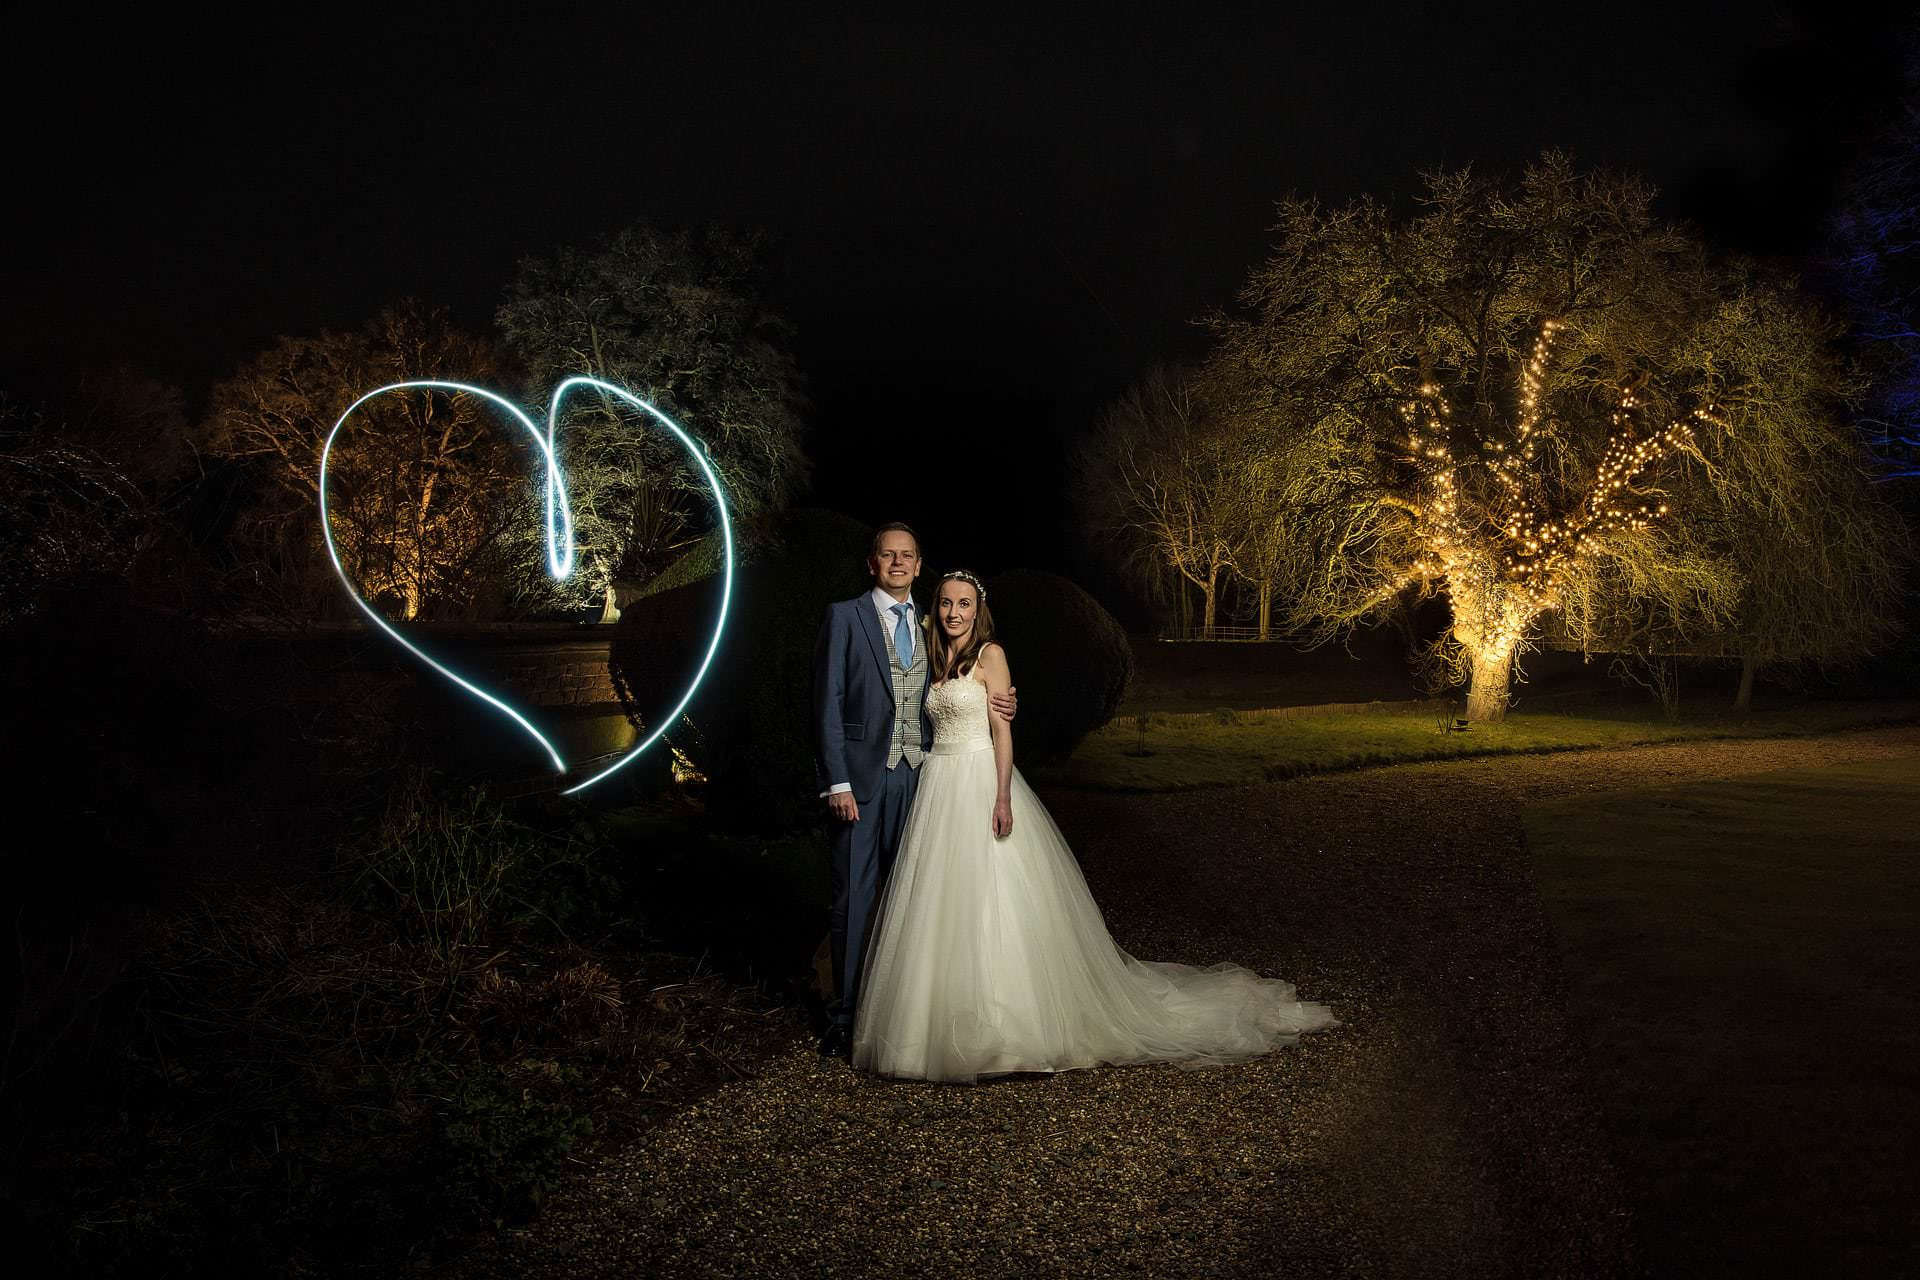 Wedding photography with heart light painting